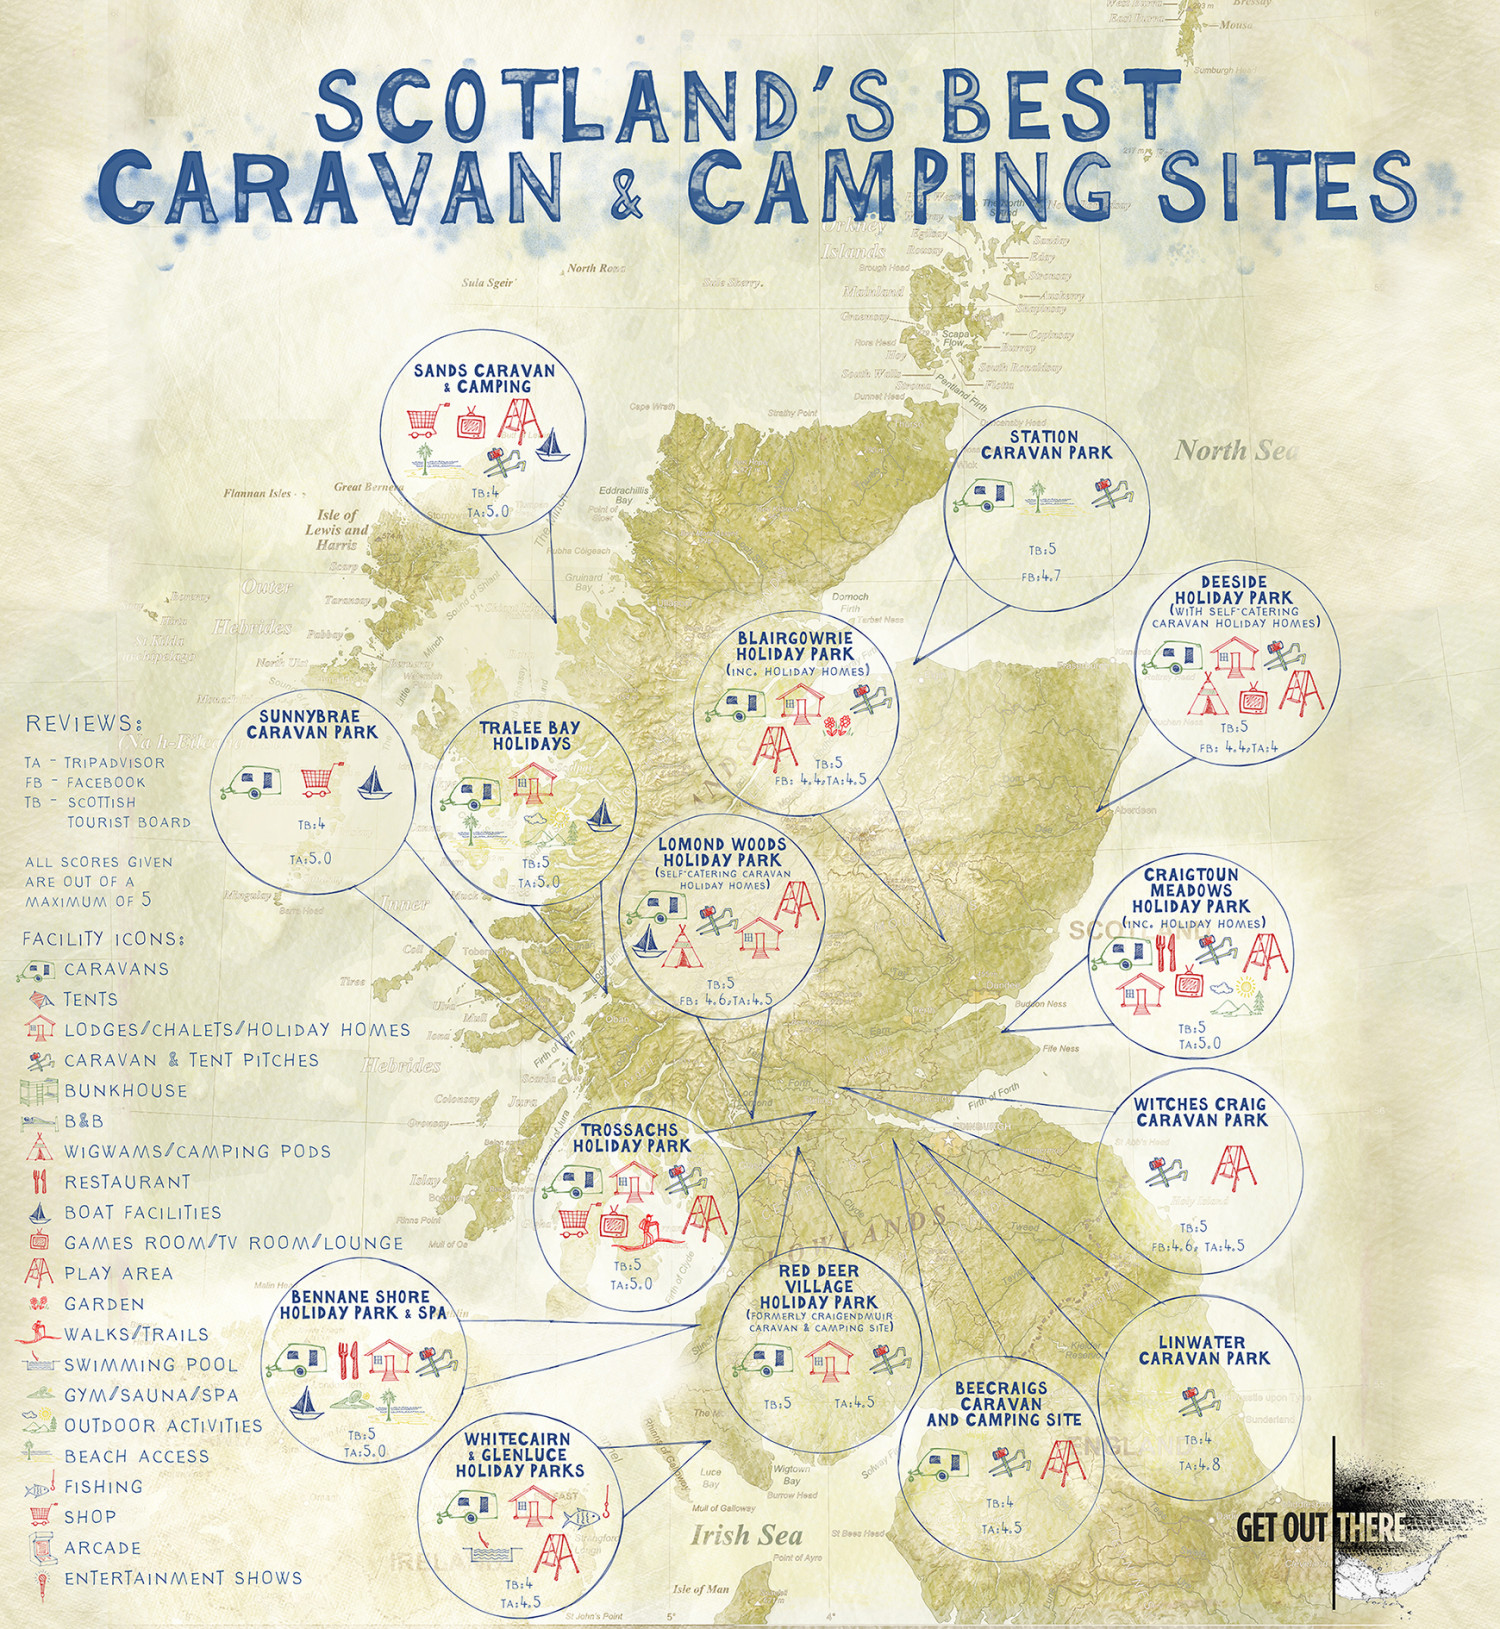 Scotland's Best Caravan & Camping Sites Infographic